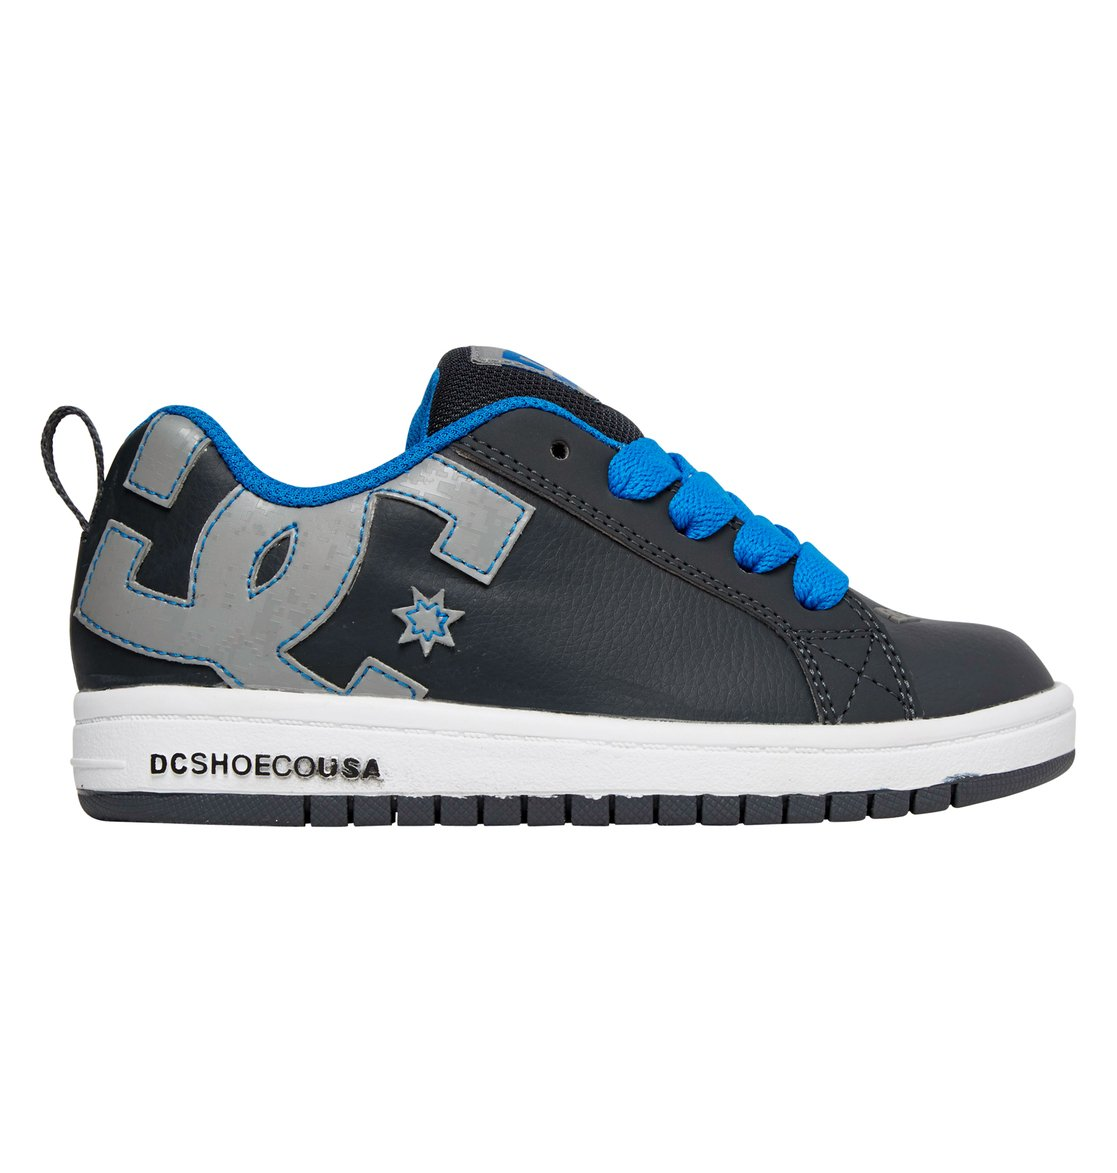 DC Clothing & Shoes: Defy Convention DC Shoes became one of the leaders in skateboarding shoes when it was founded in As a renowned action sports brand, DC is known for creating signature skateboard shoes and apparel for men women and kids.